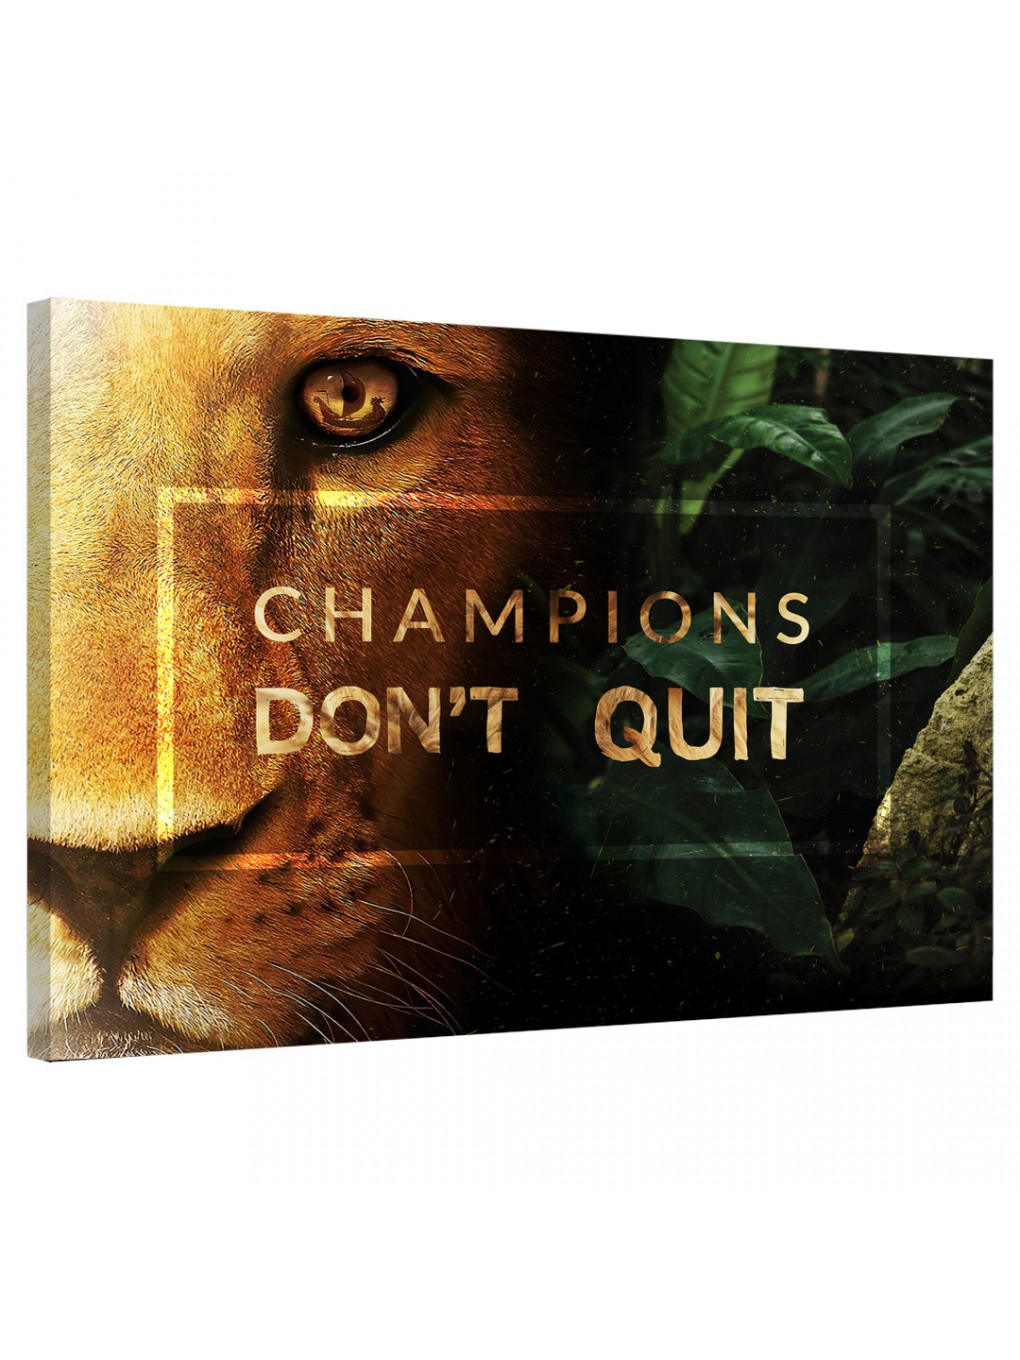 Champions don't quit_CHA278_0